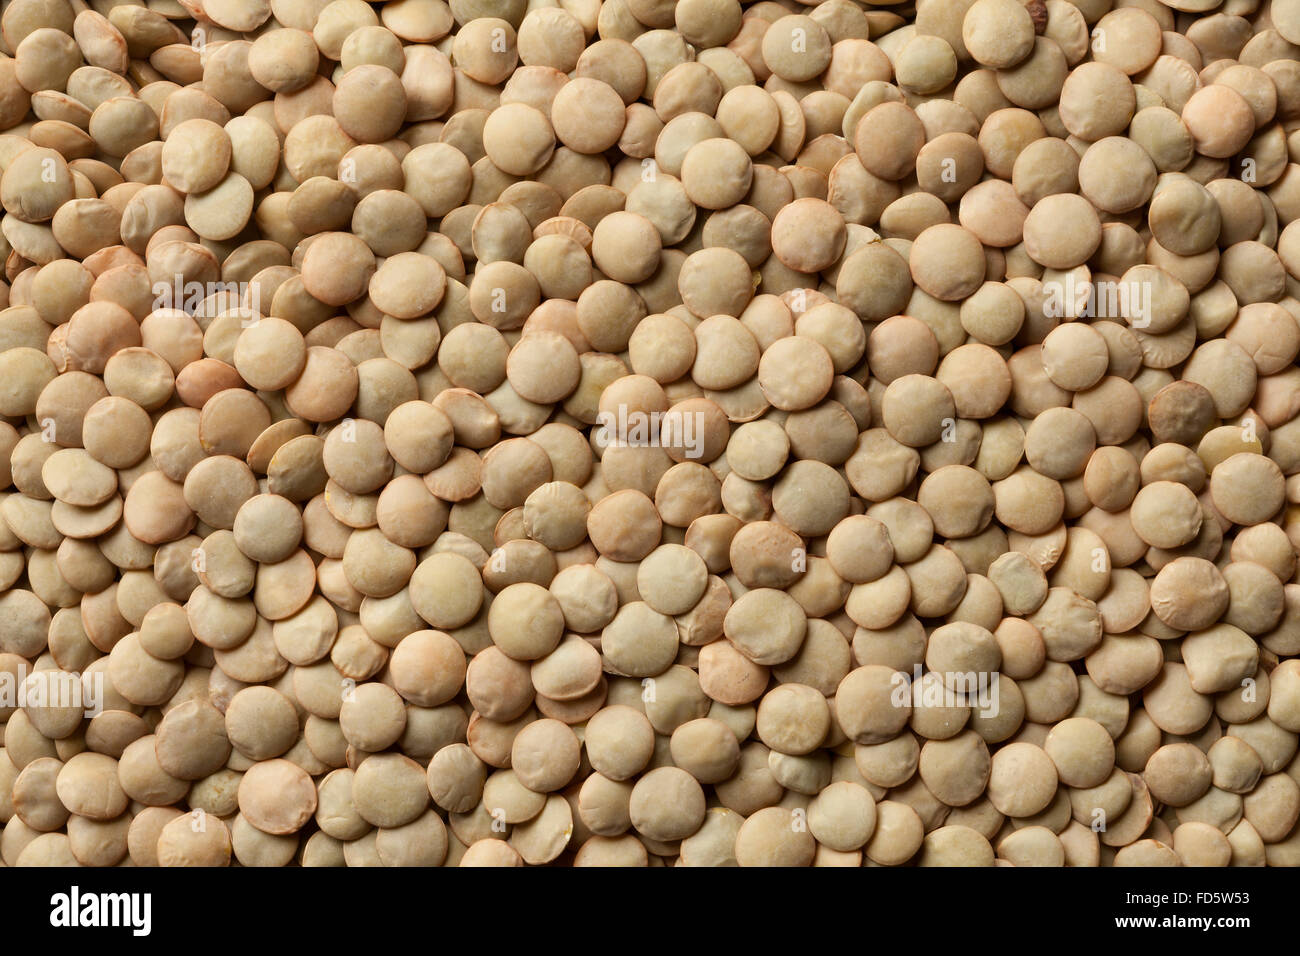 Dried brown lentils full frame - Stock Image